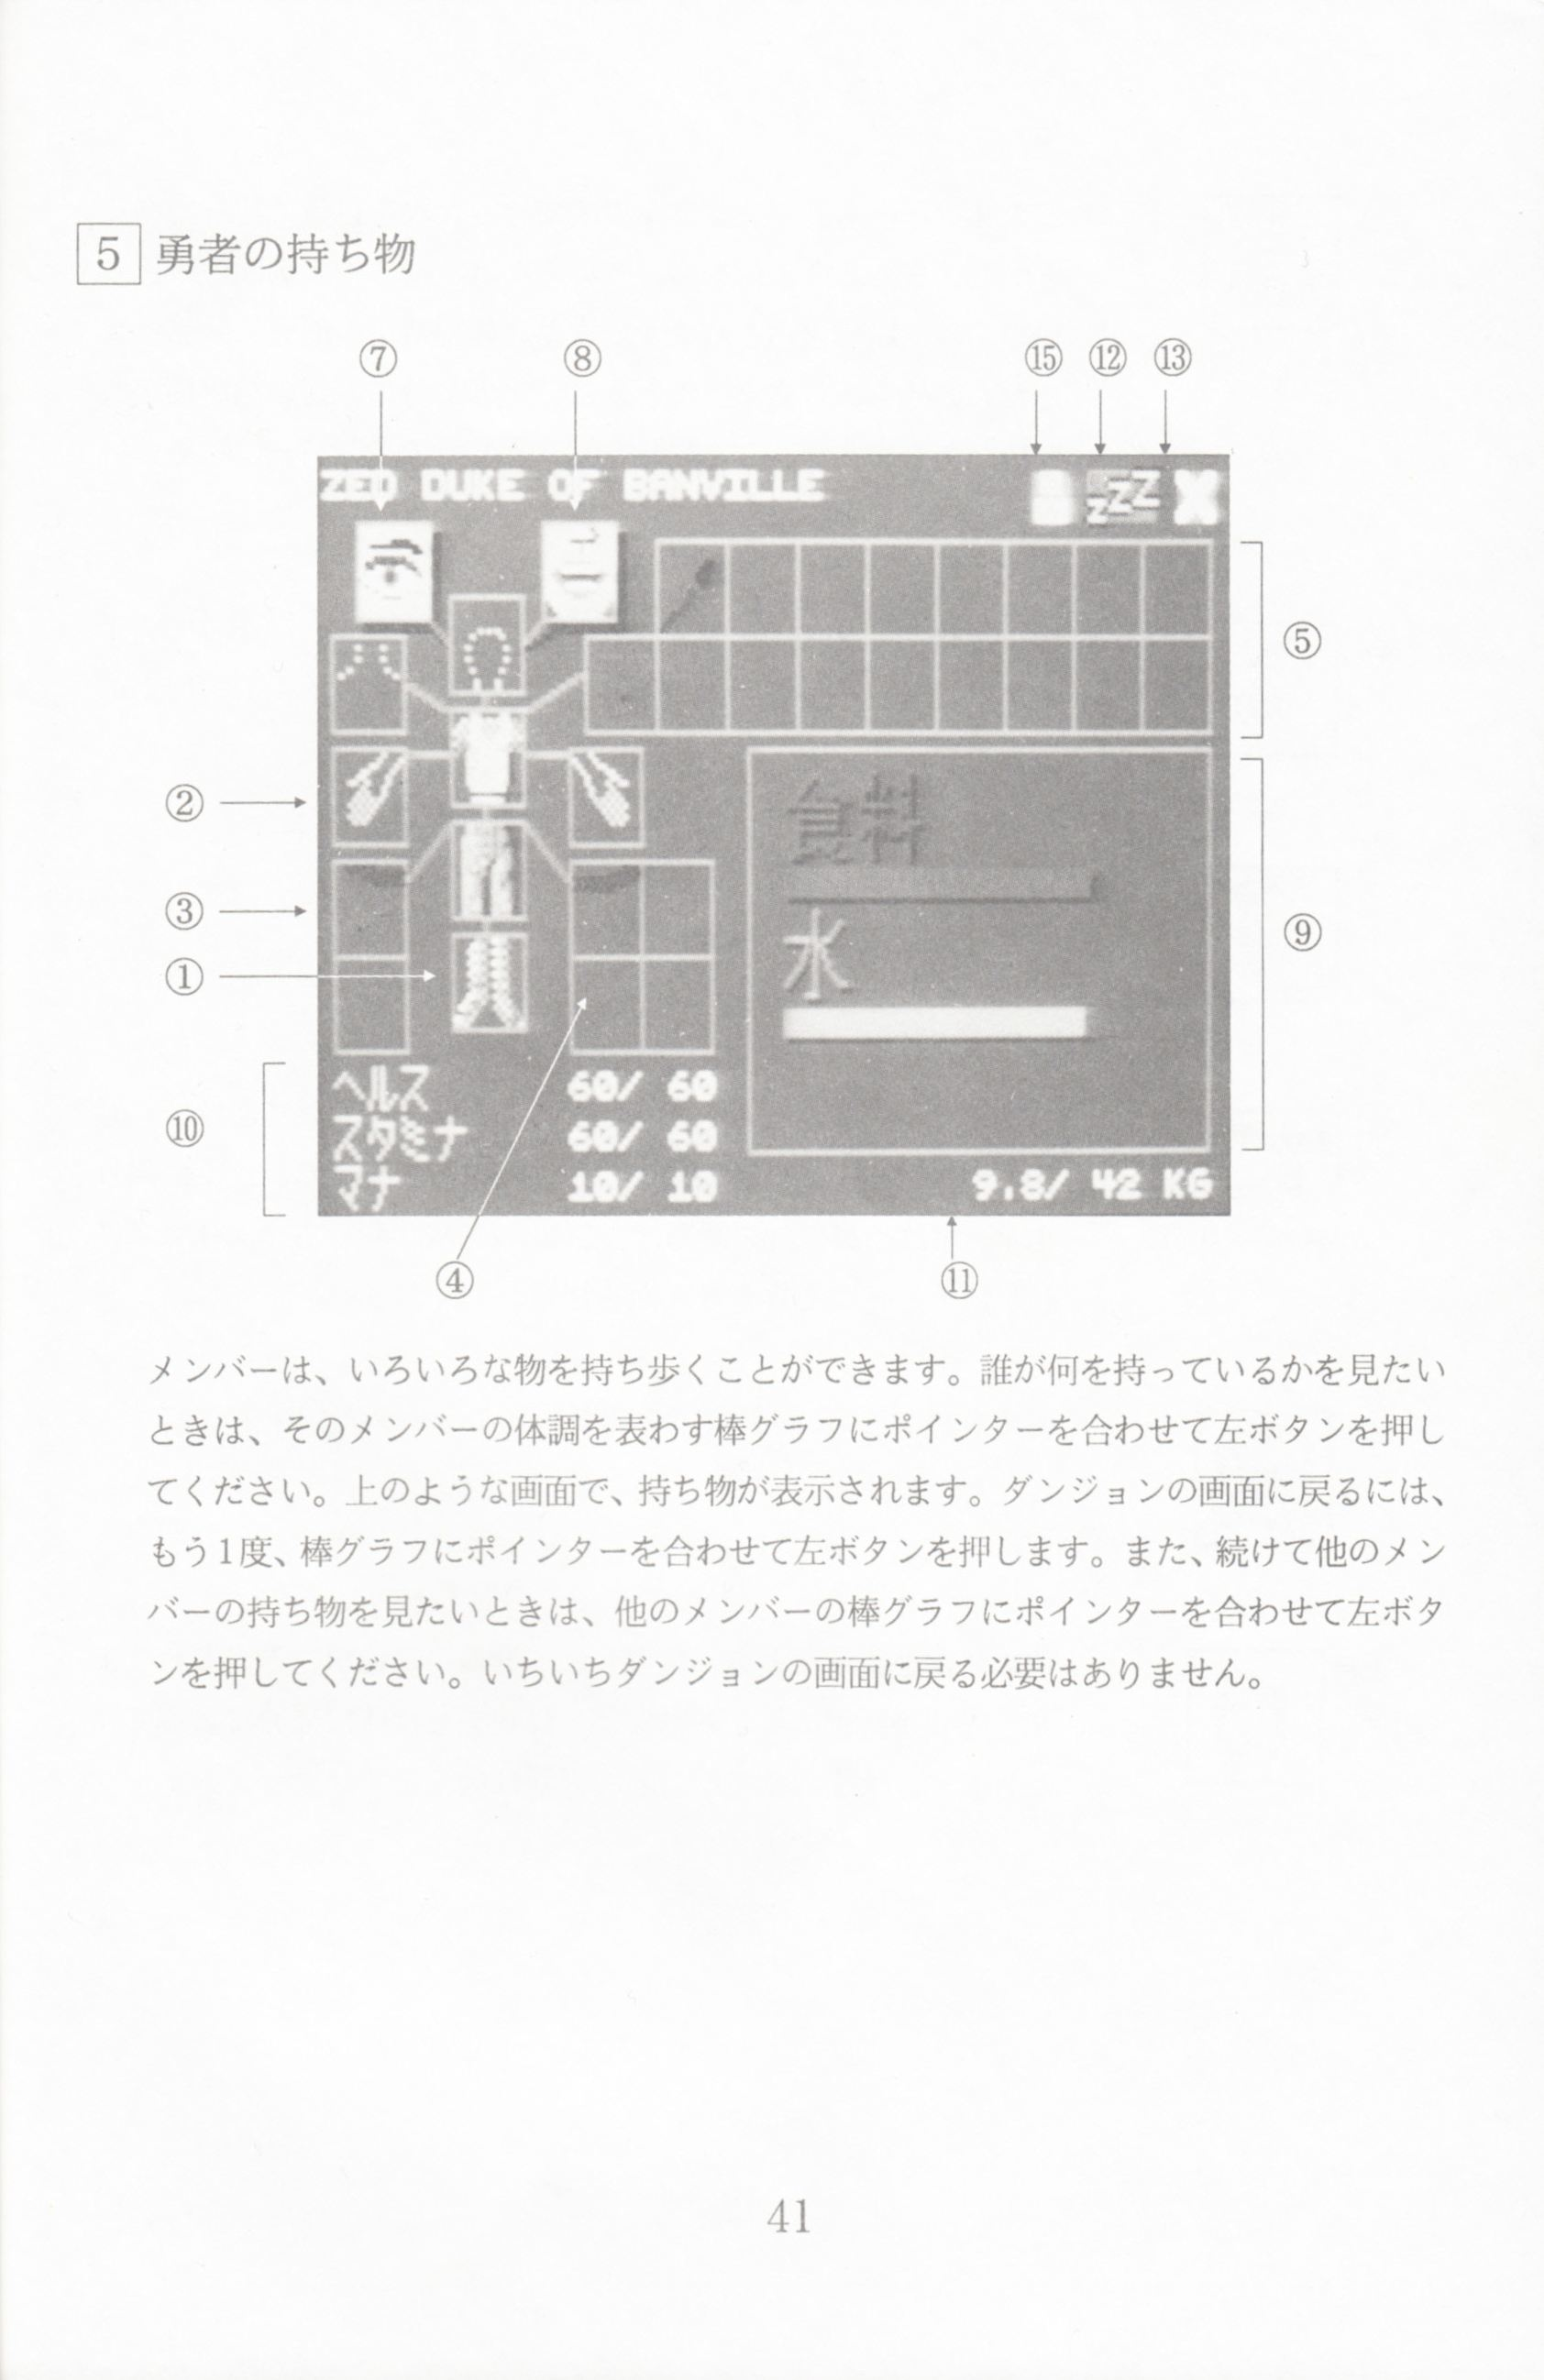 Game - Dungeon Master - JP - PC-9801 - 5.25-inch - Manual - Page 043 - Scan